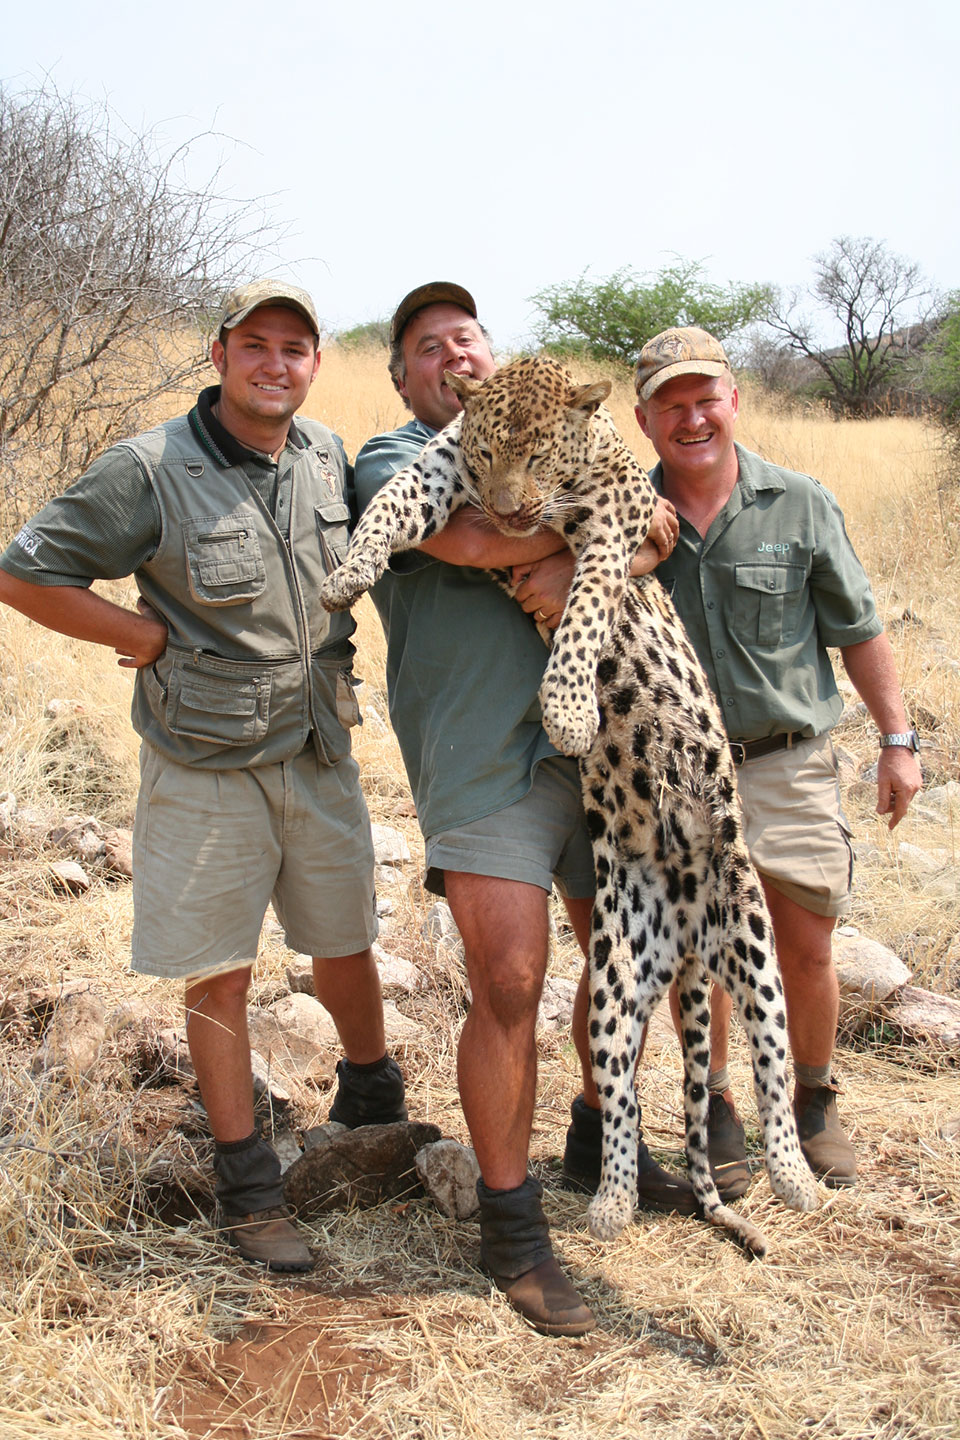 professional-hunter-for-trophy-leopard-in-Africa.jpg